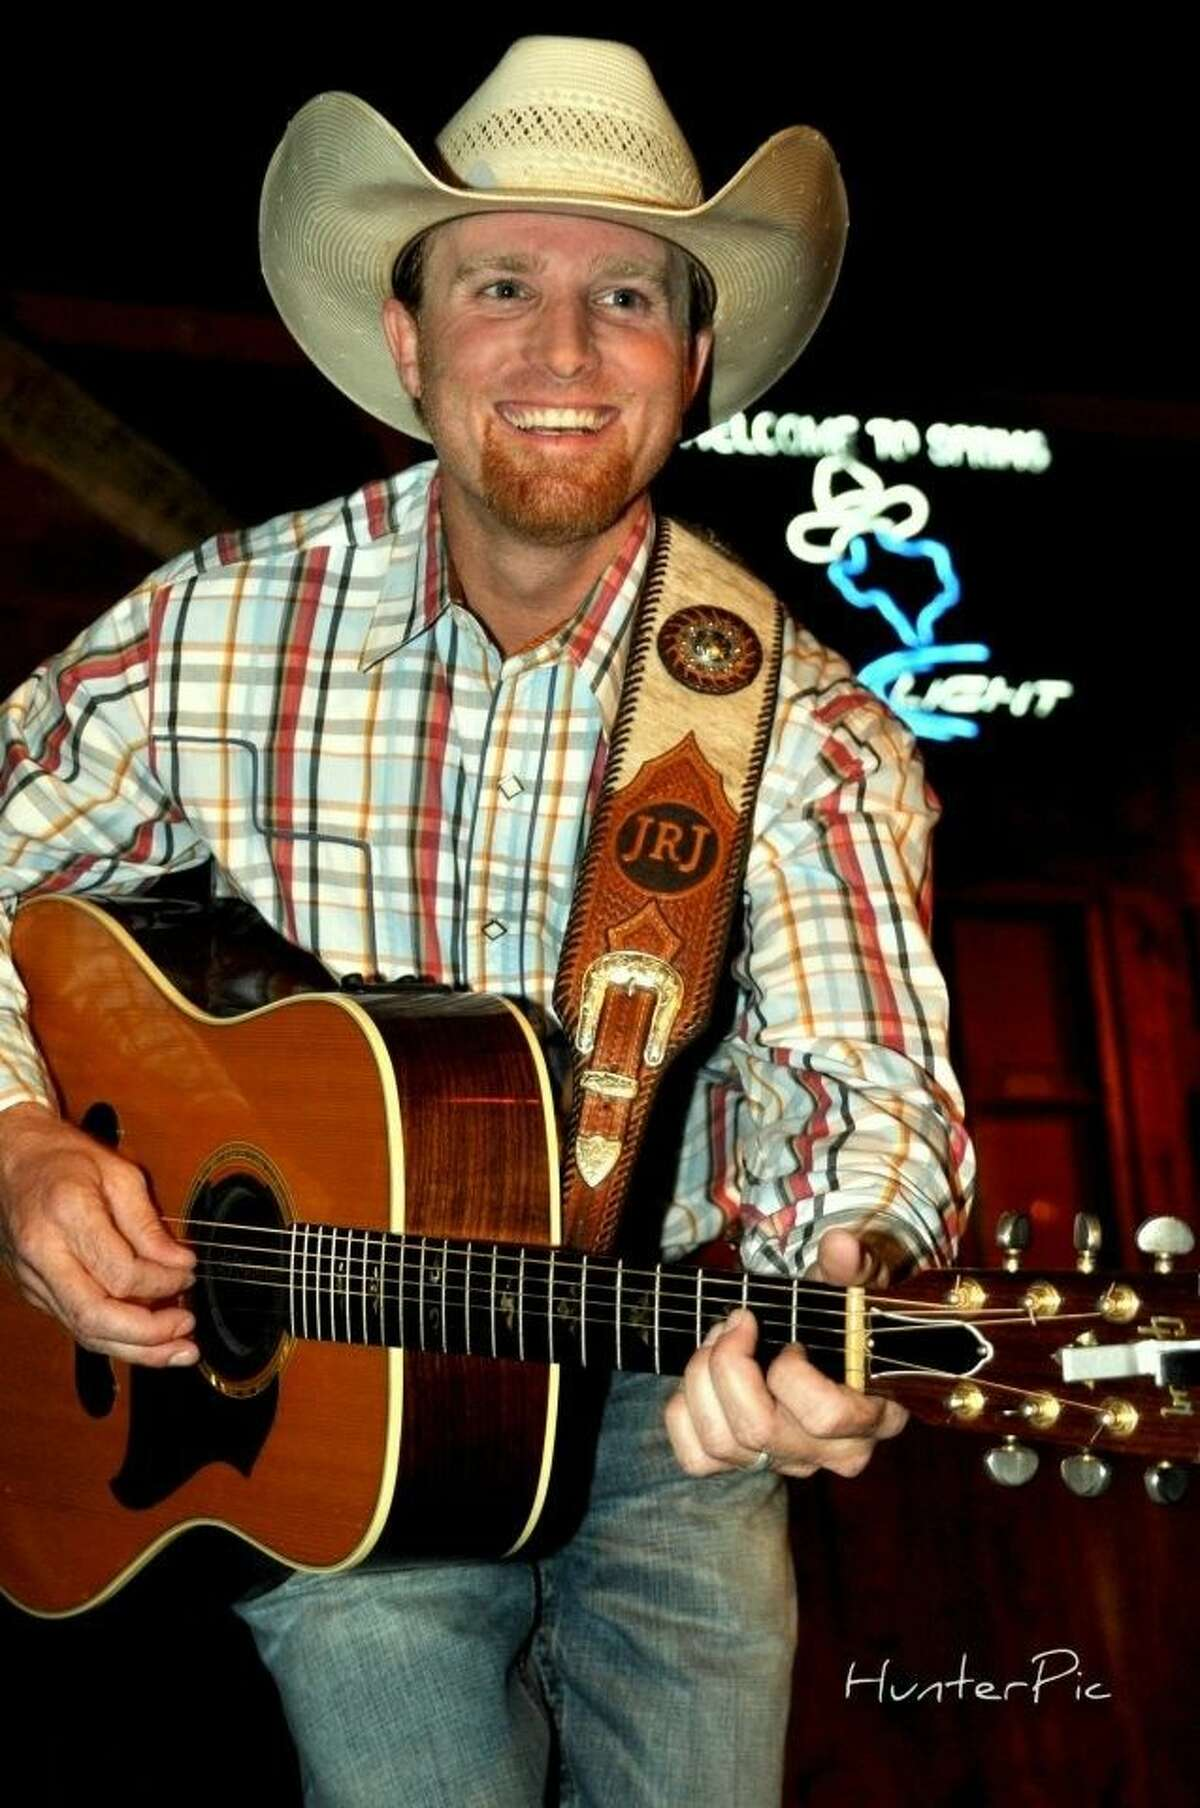 Jesse Raub Jr., a local country artist, has performed for more than 10 years. He will perform at the first time Tomball Music Festival on Saturday, August 30.